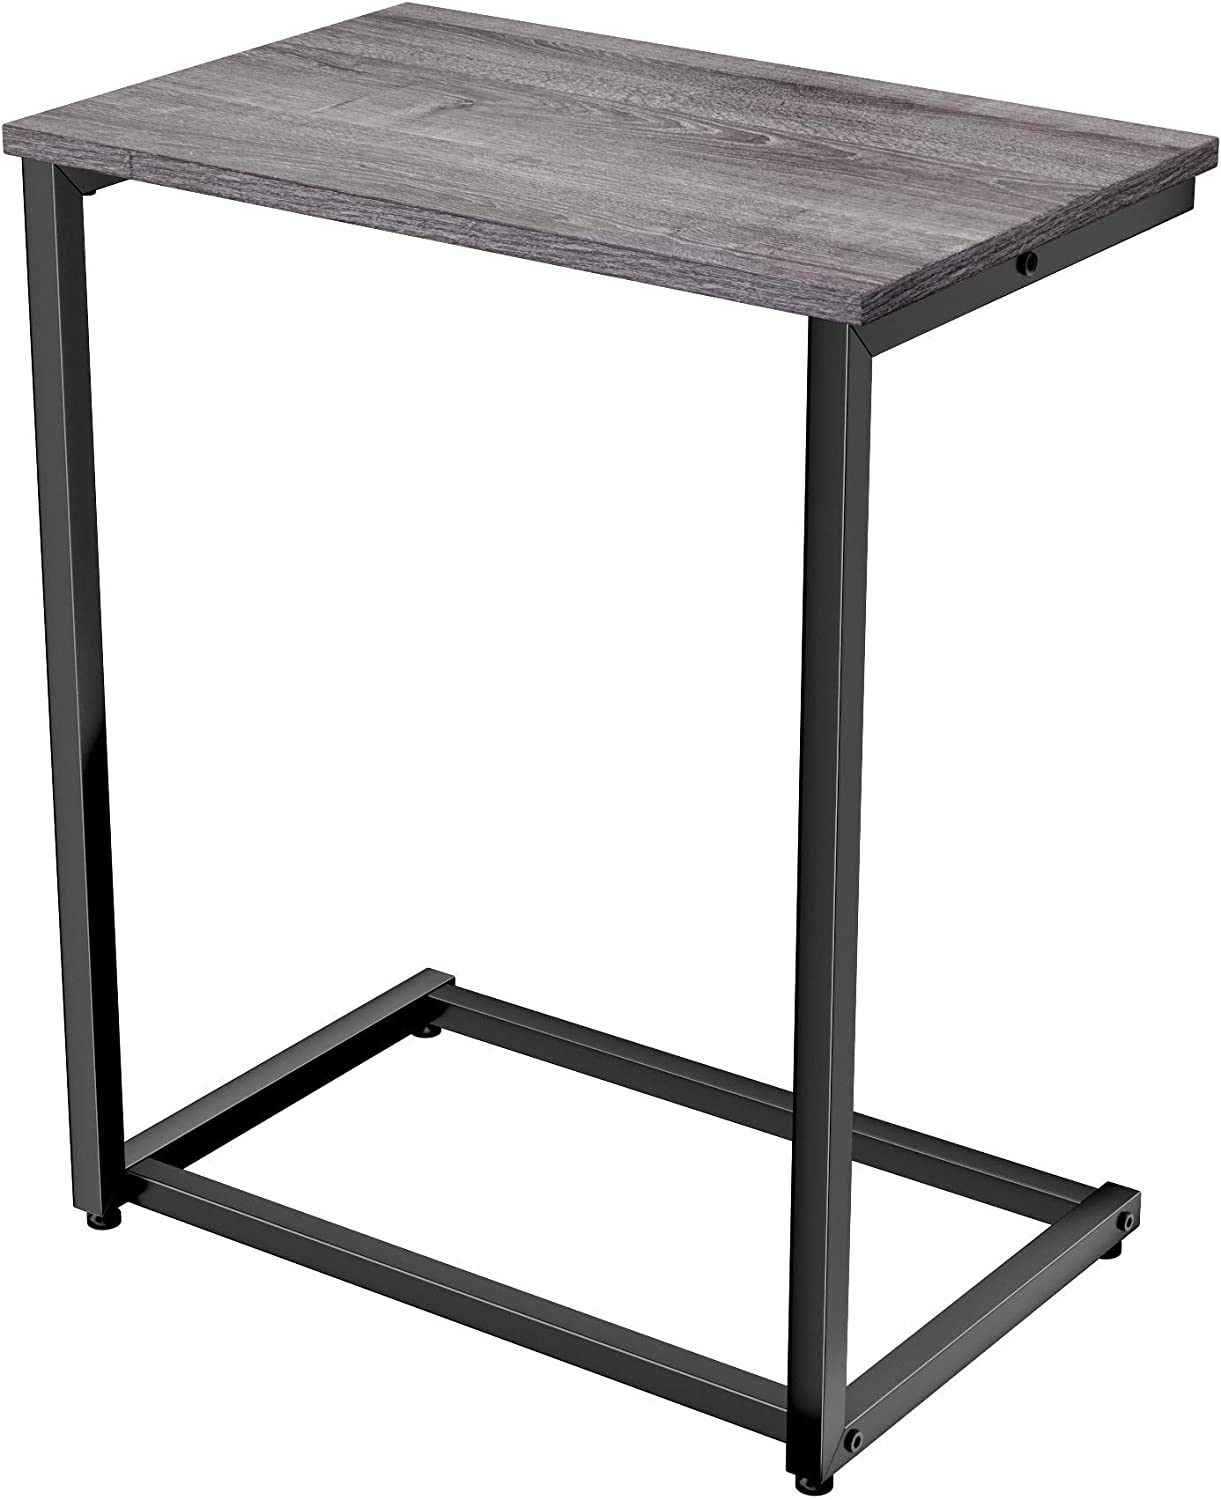 Homemaxs C Table Sofa Side End Table Wood Finish Steel Construction Easy Assembly 26-Inch for Small Space (Gray)